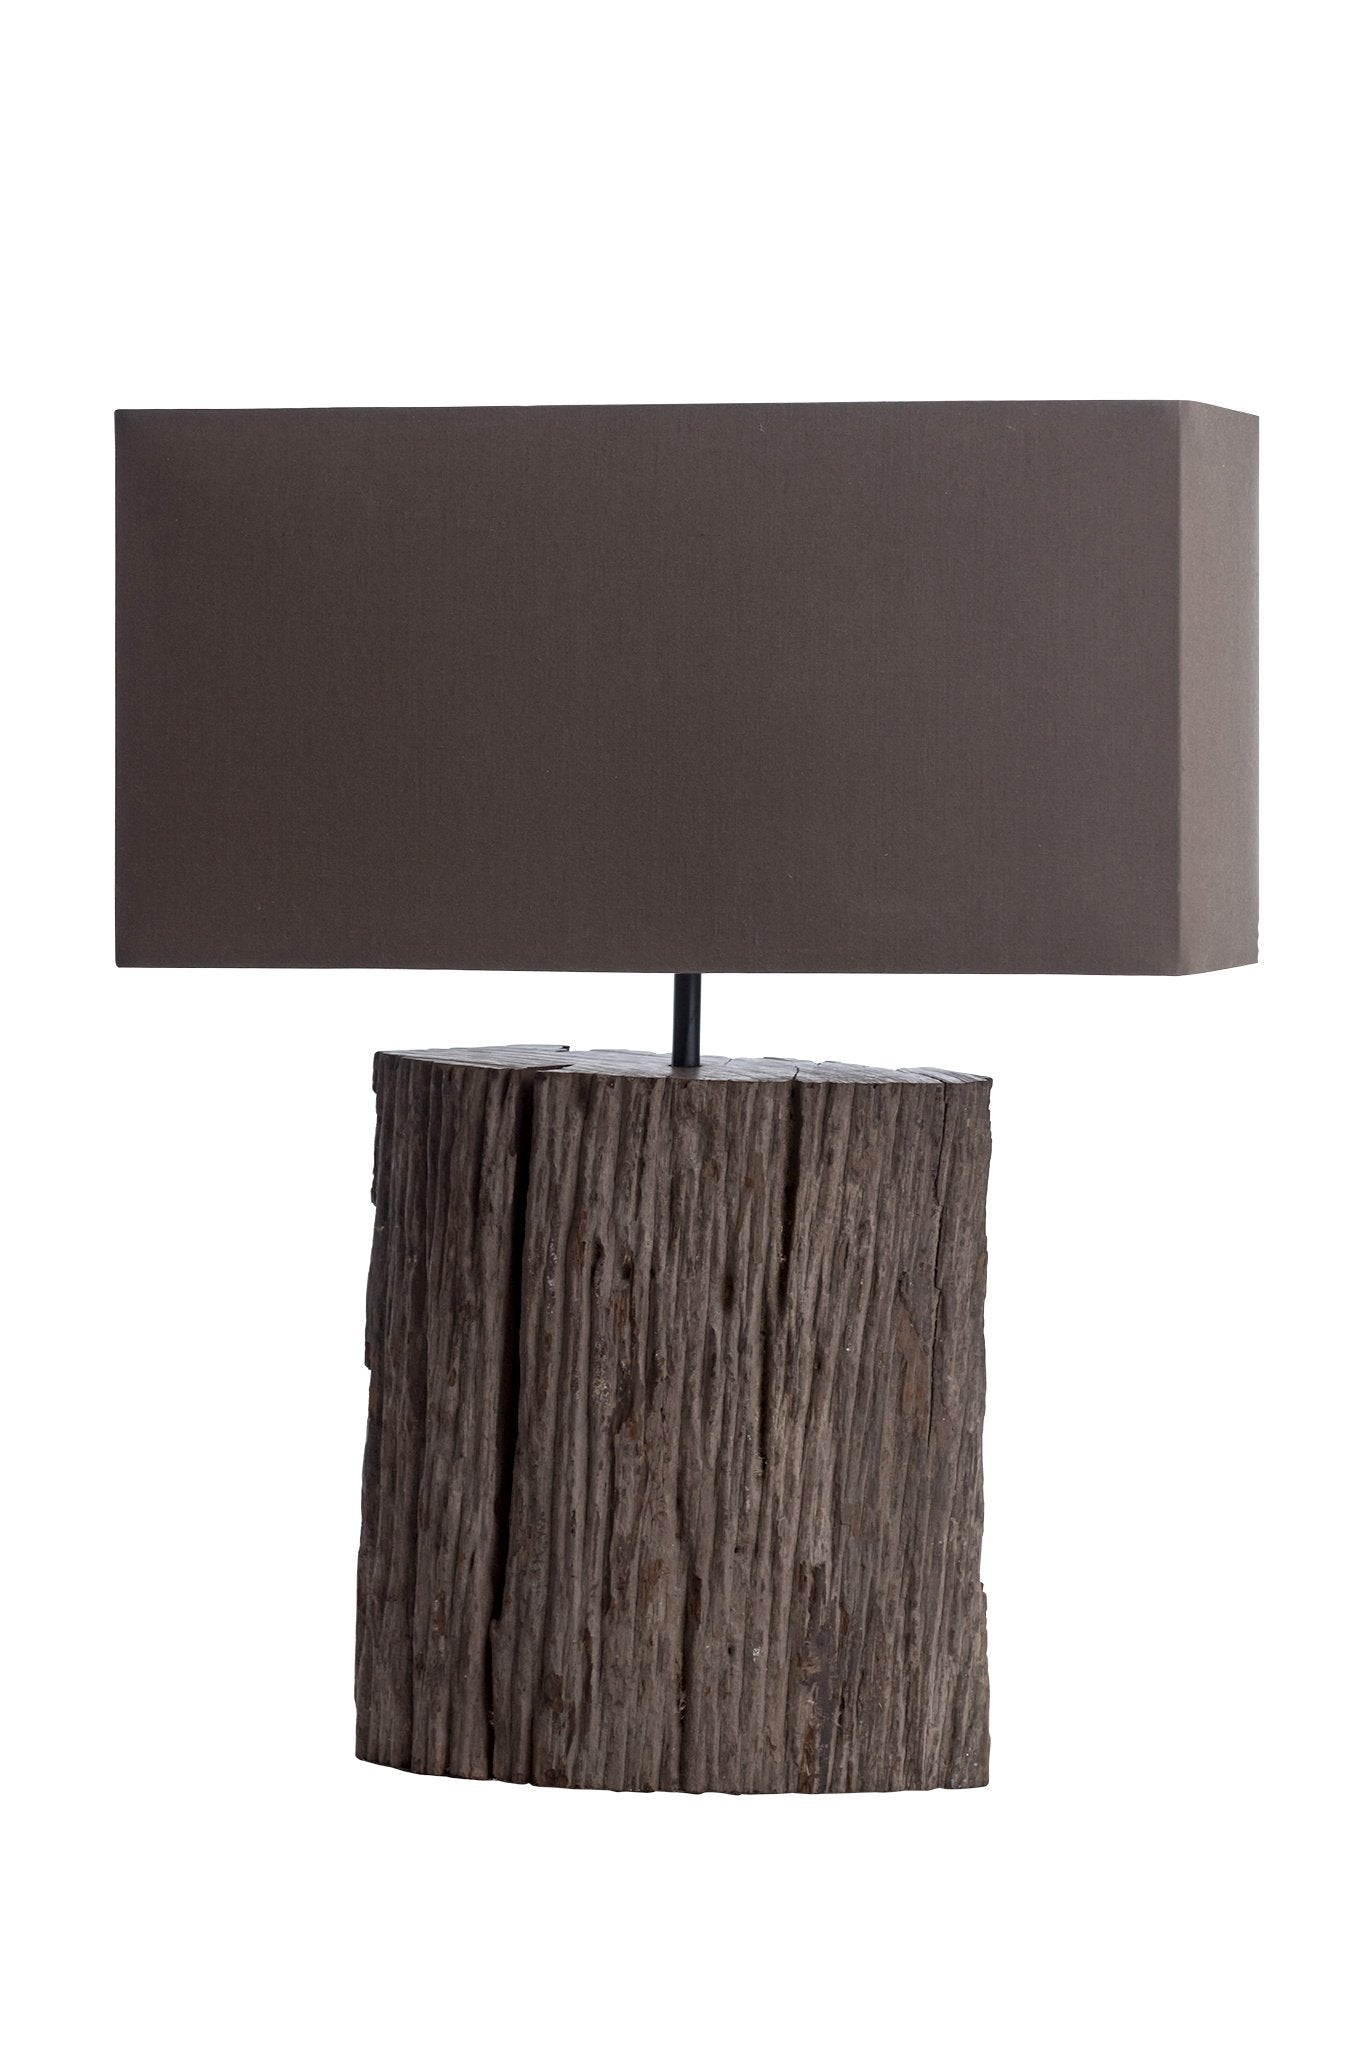 Wax Driftwood Bark Table Lamp - O'THENTIQUE